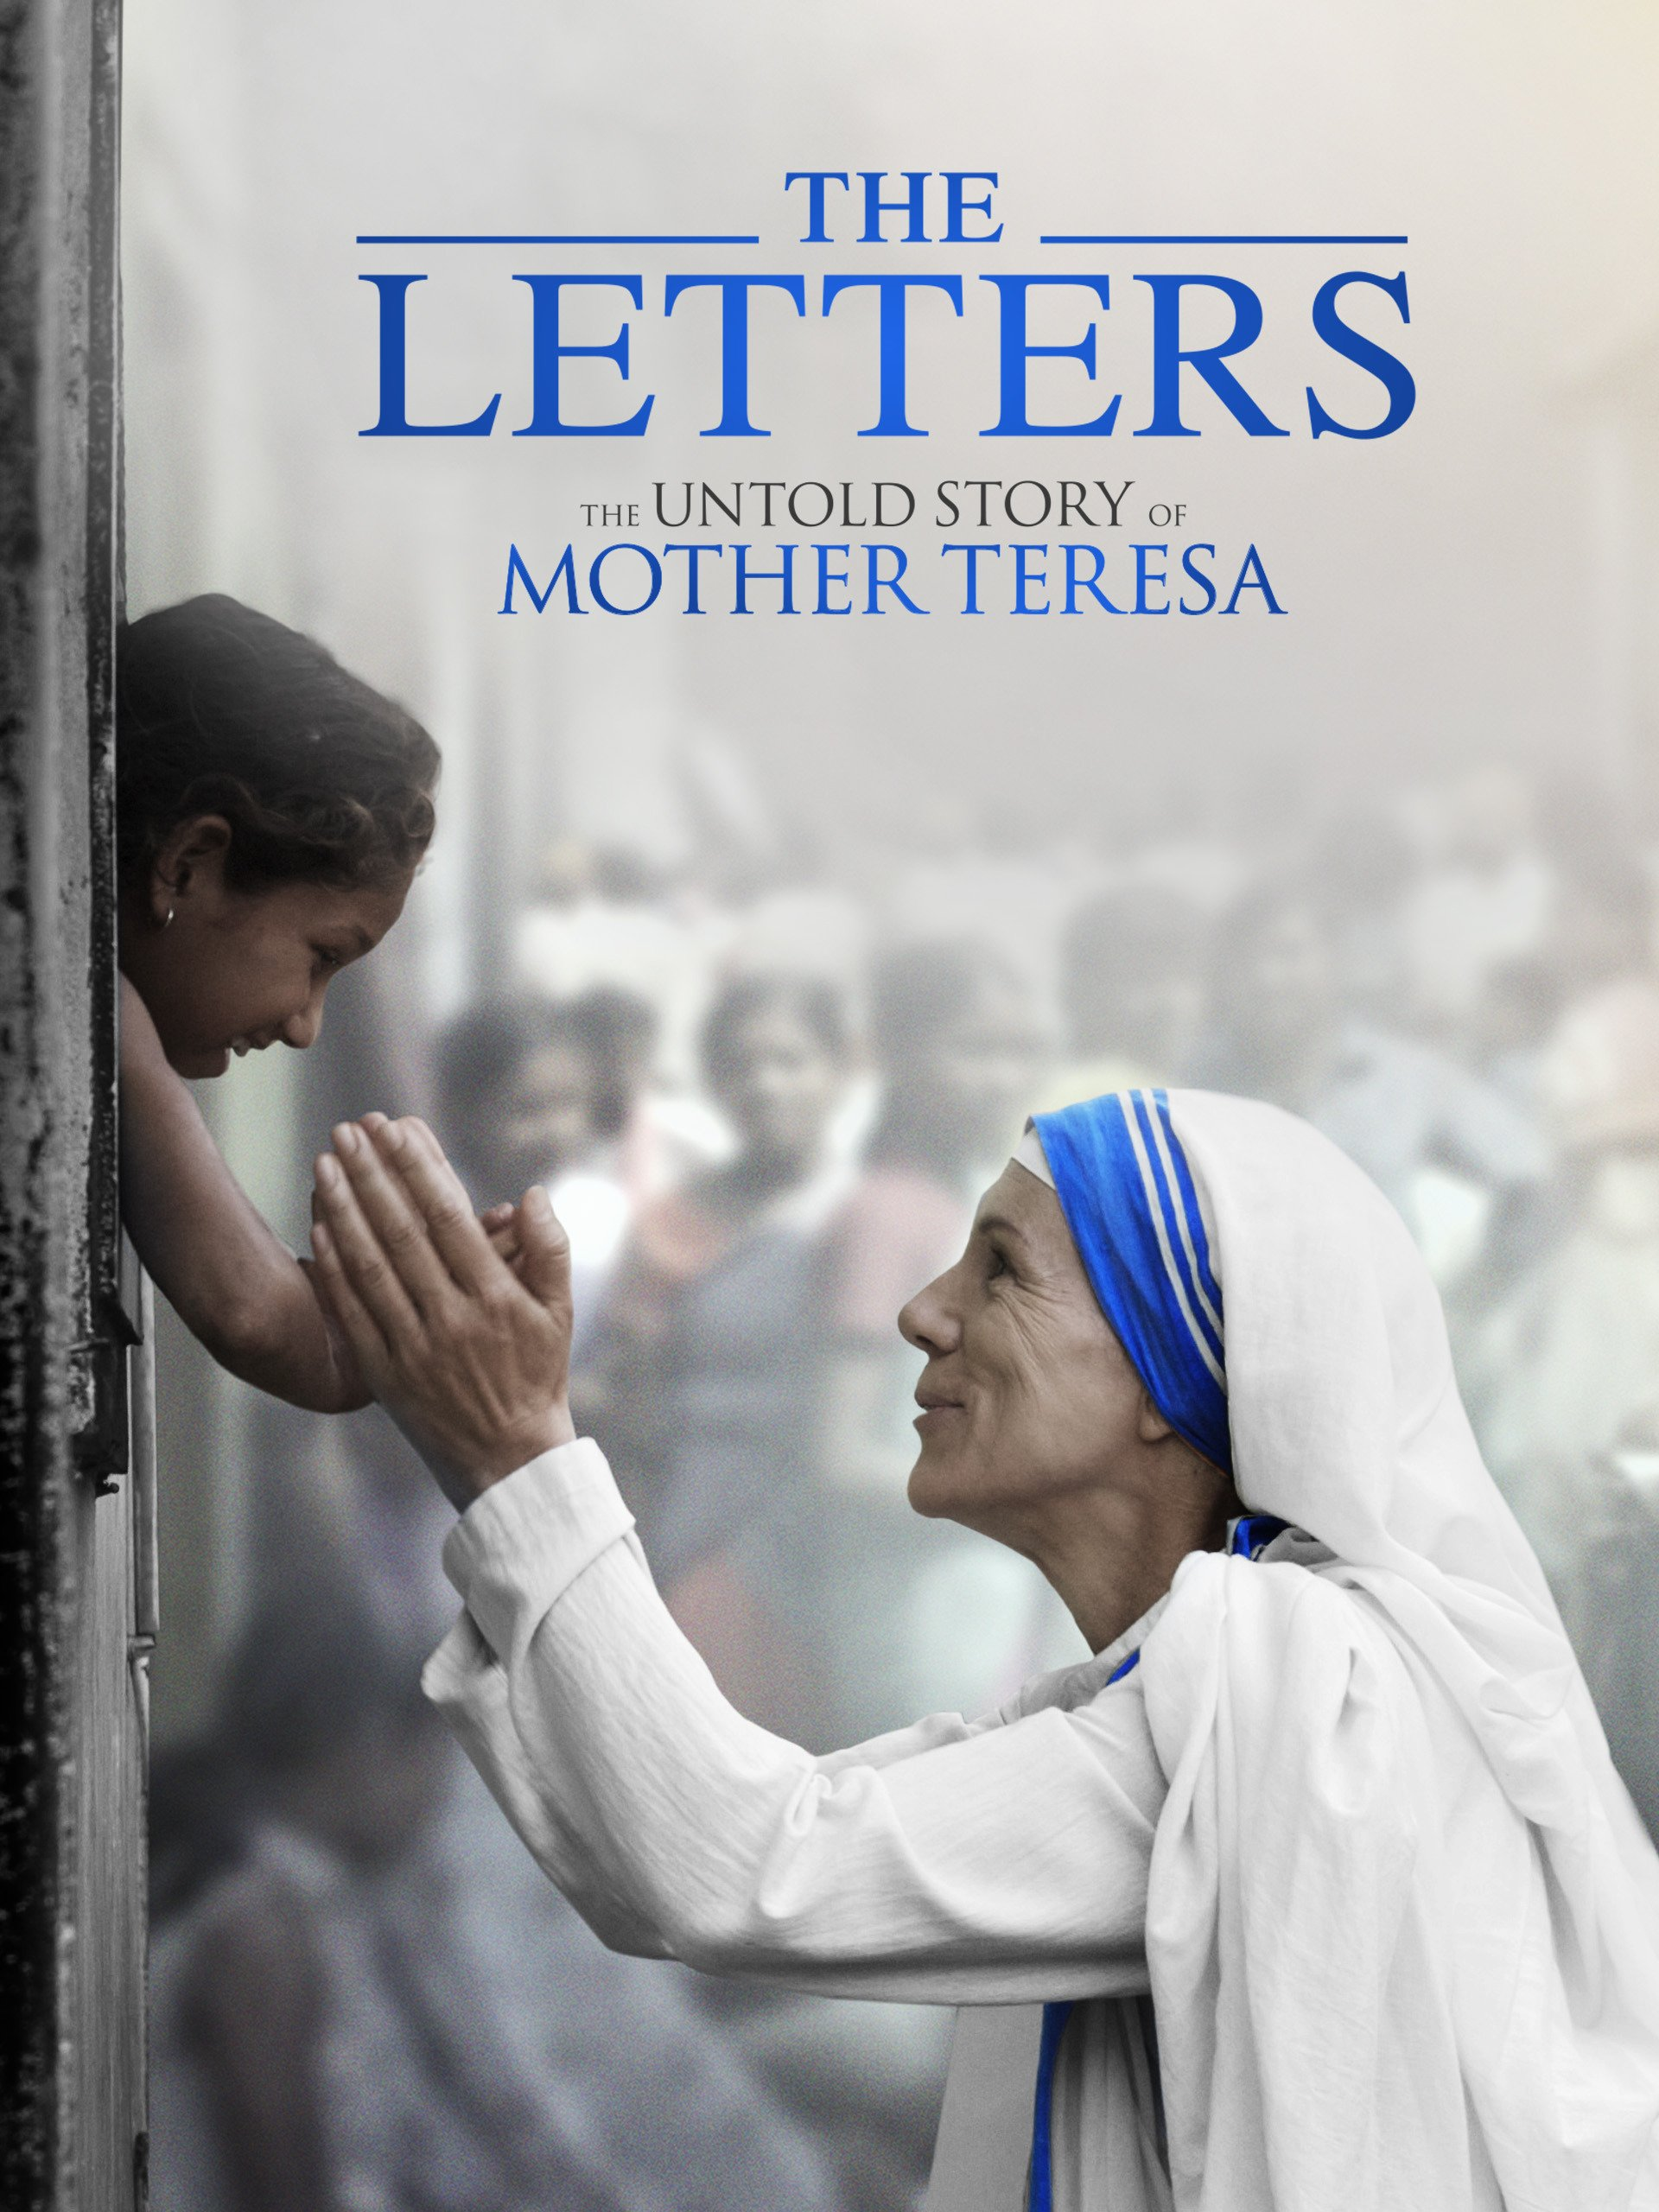 the letters mother teresa movie online free